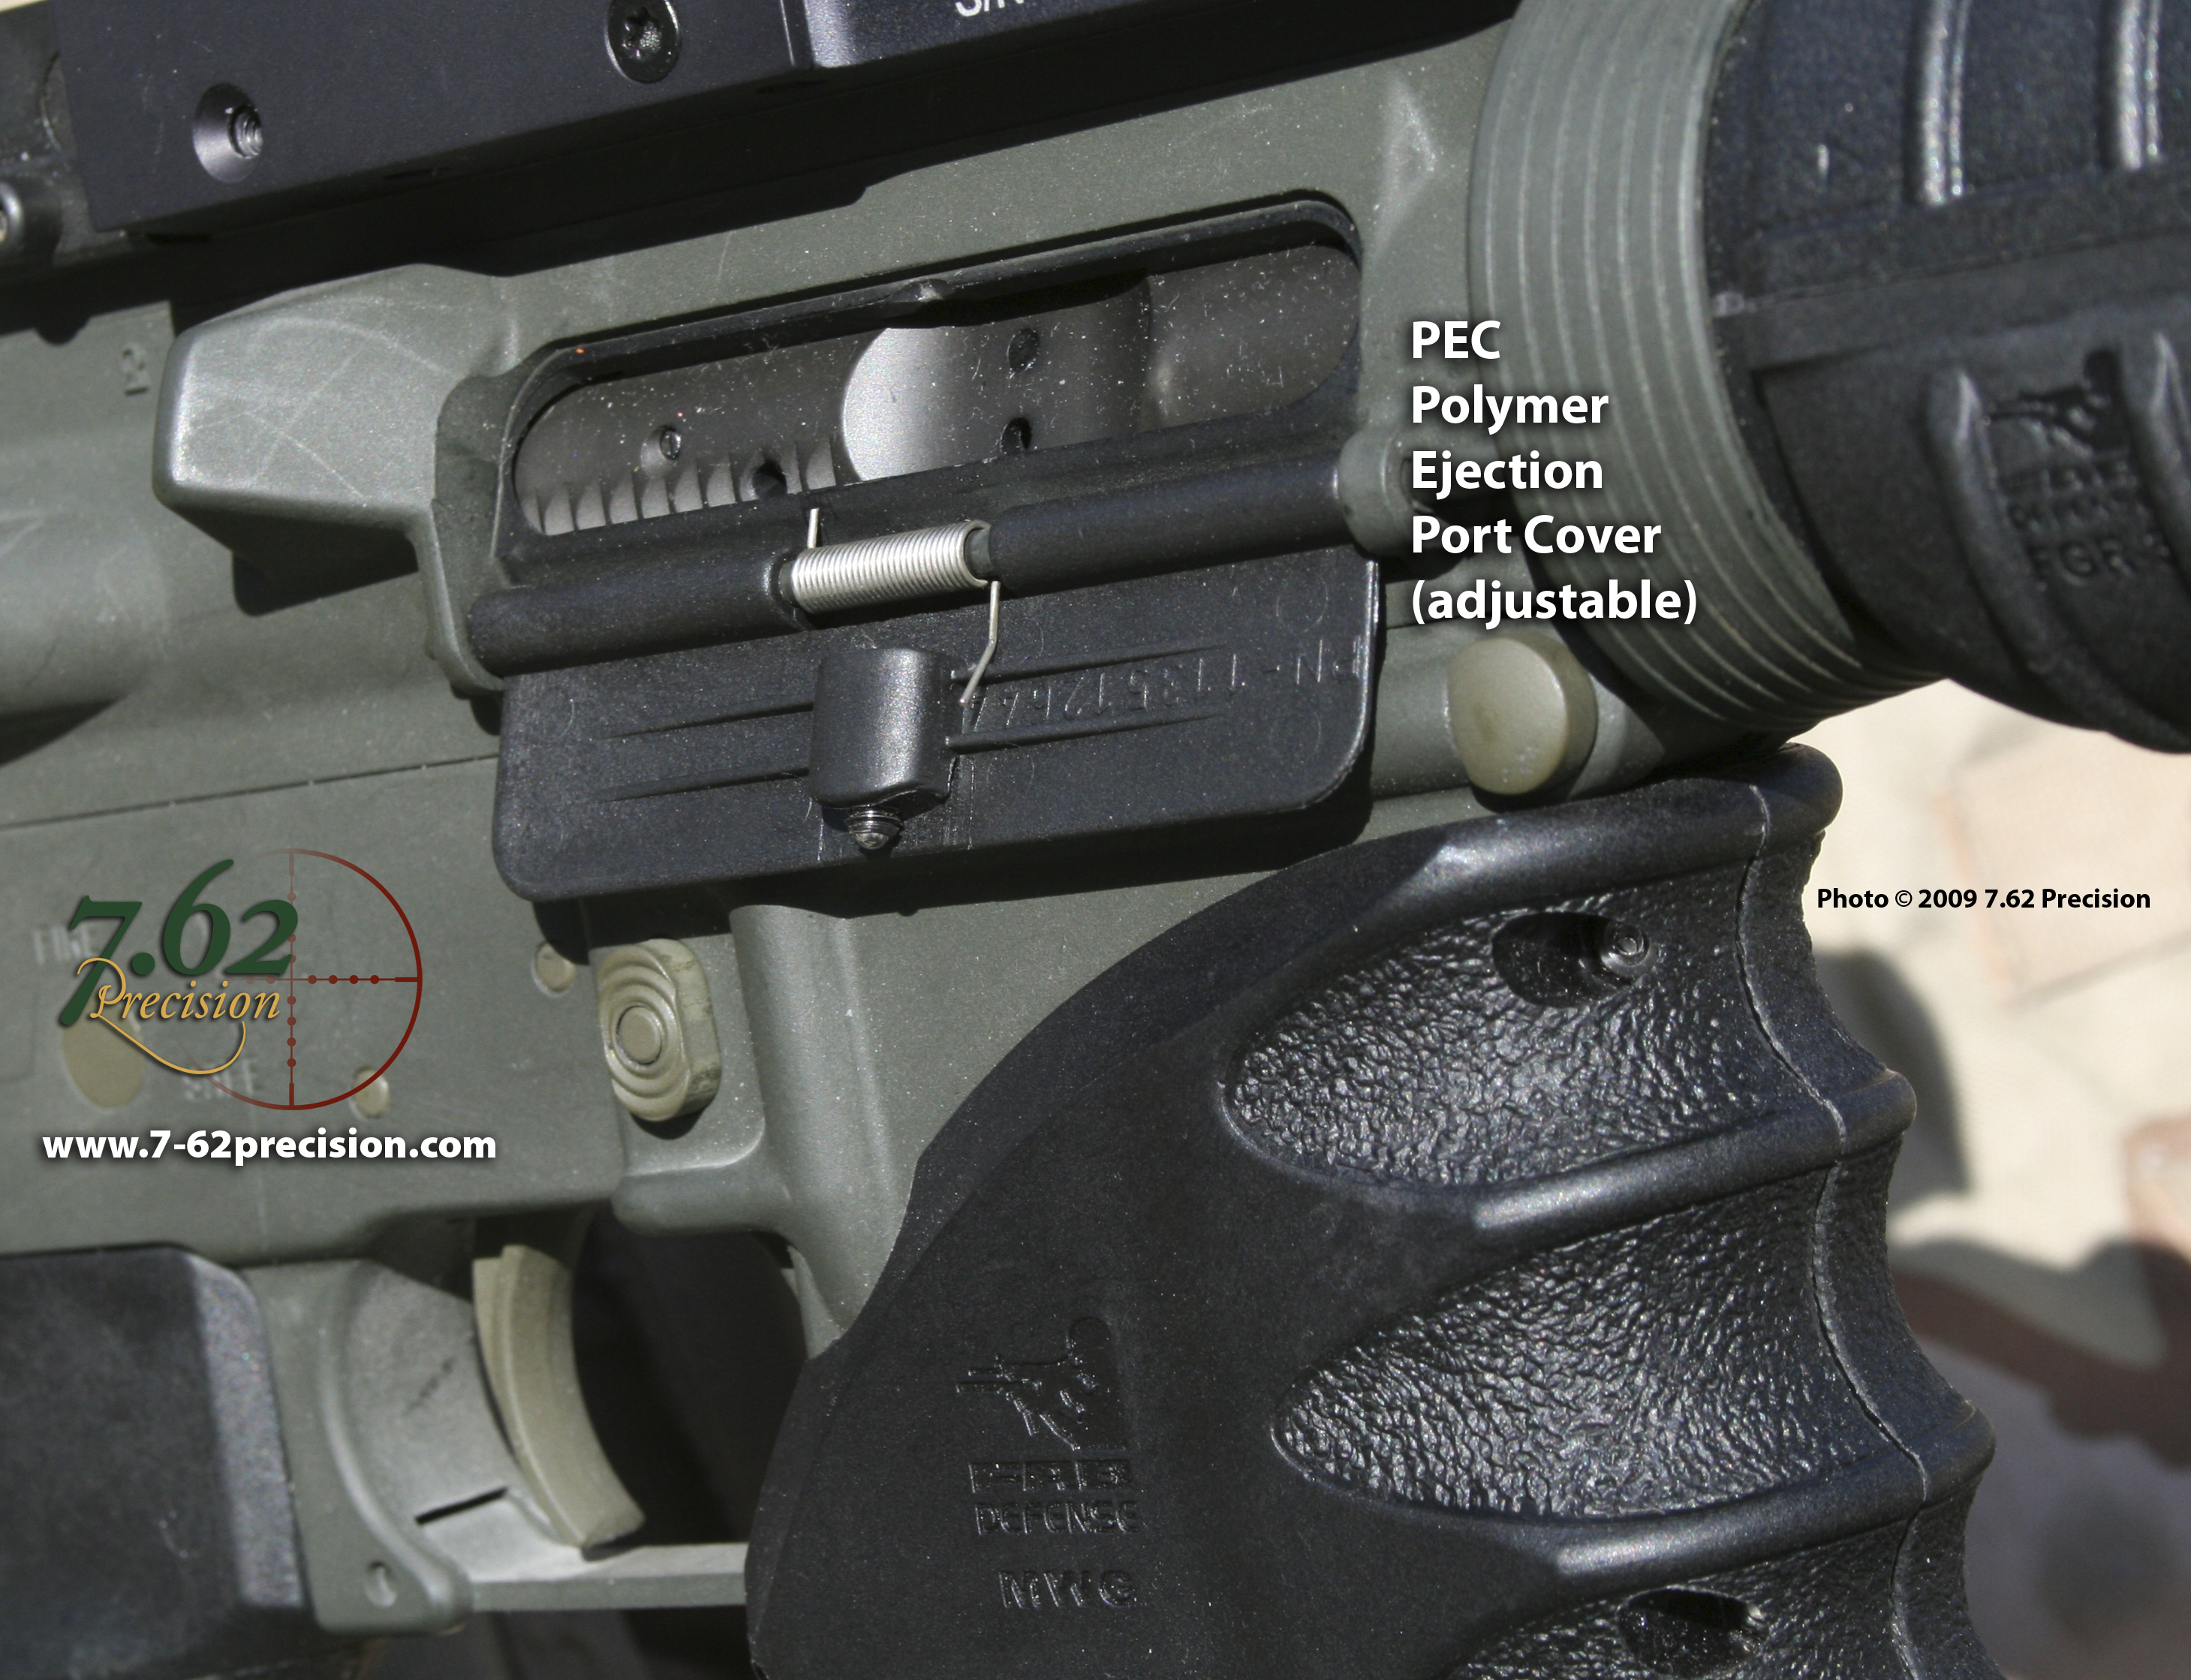 Israeli Polymer Ejection Port Cover 7 62 Precision